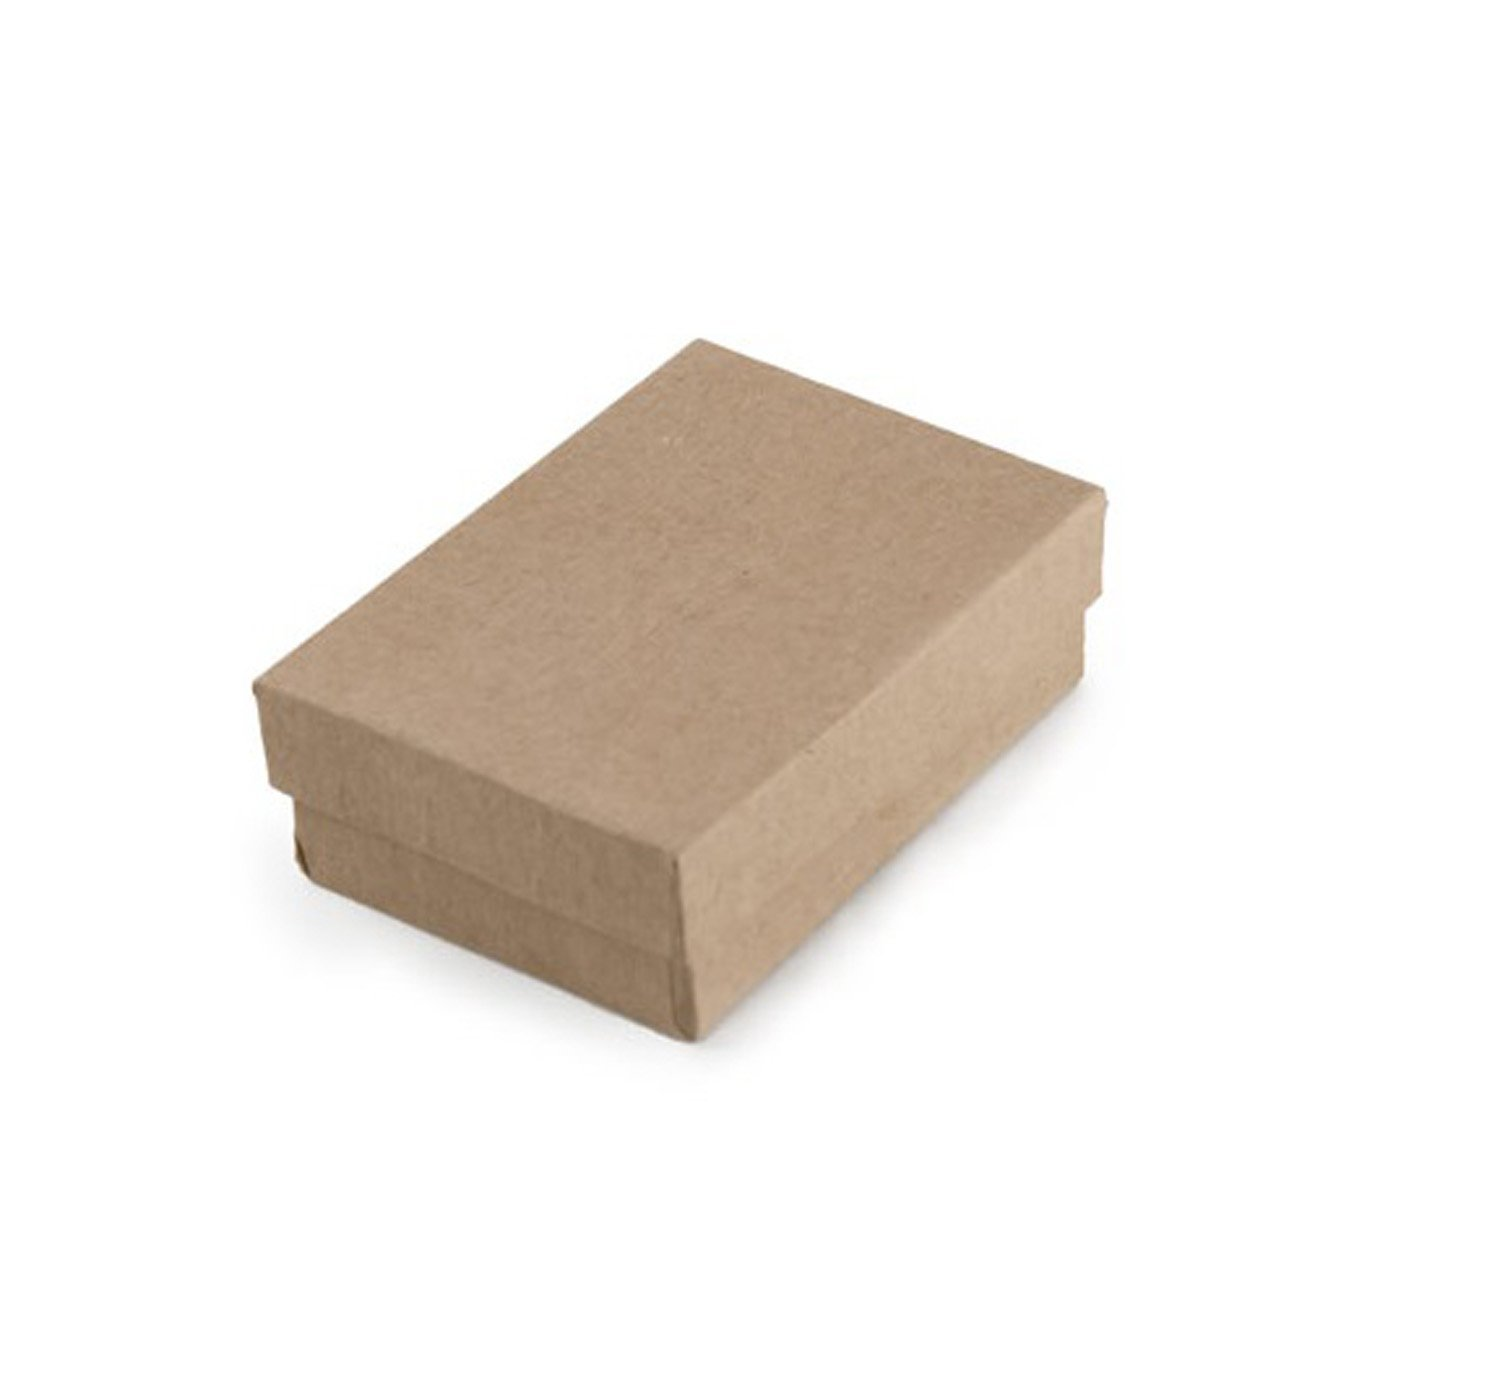 Tioneer Lot of 100 pcs 3 1/4 x 2 1/4'' x 1'' Kraft Cotton Filled Jewelry Boxes